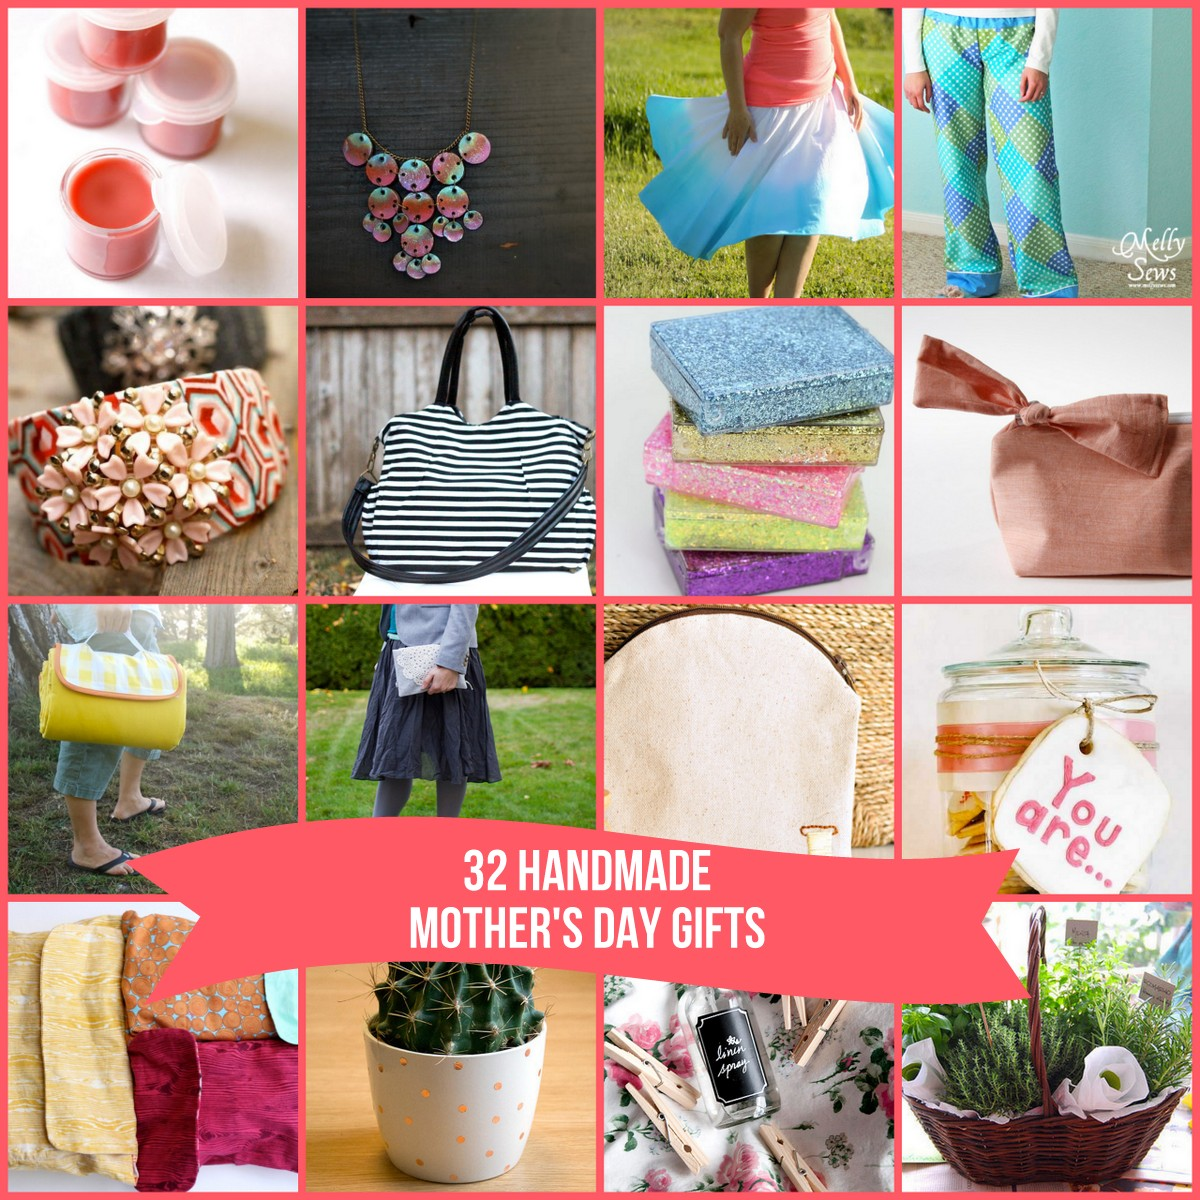 32 fabulous DIY Mother's Day gift ideas (includes no sew options!)